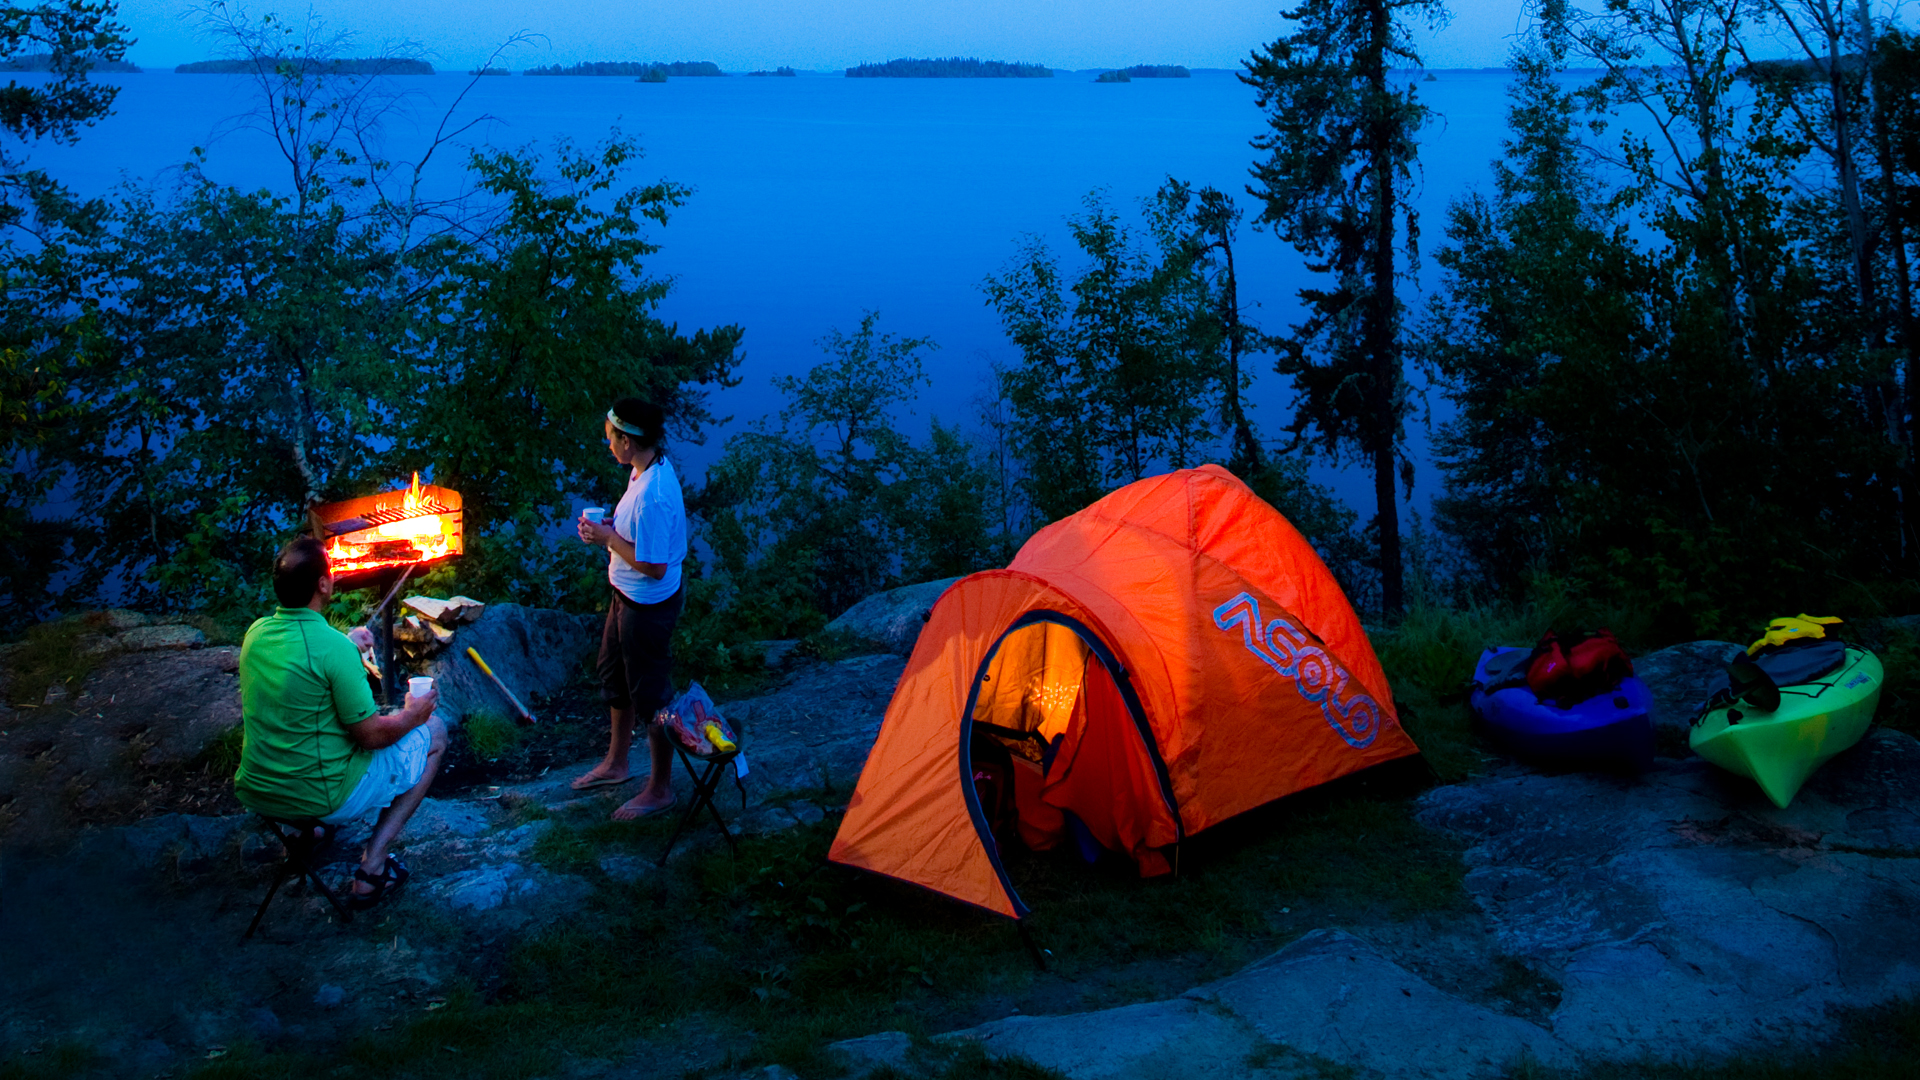 Camping  A Great Vacation   Bush On Crack Camping exterior is among the earliest task a male could do for the male  has actually been resting out under the celebrities or in handmade  sanctuaries as a